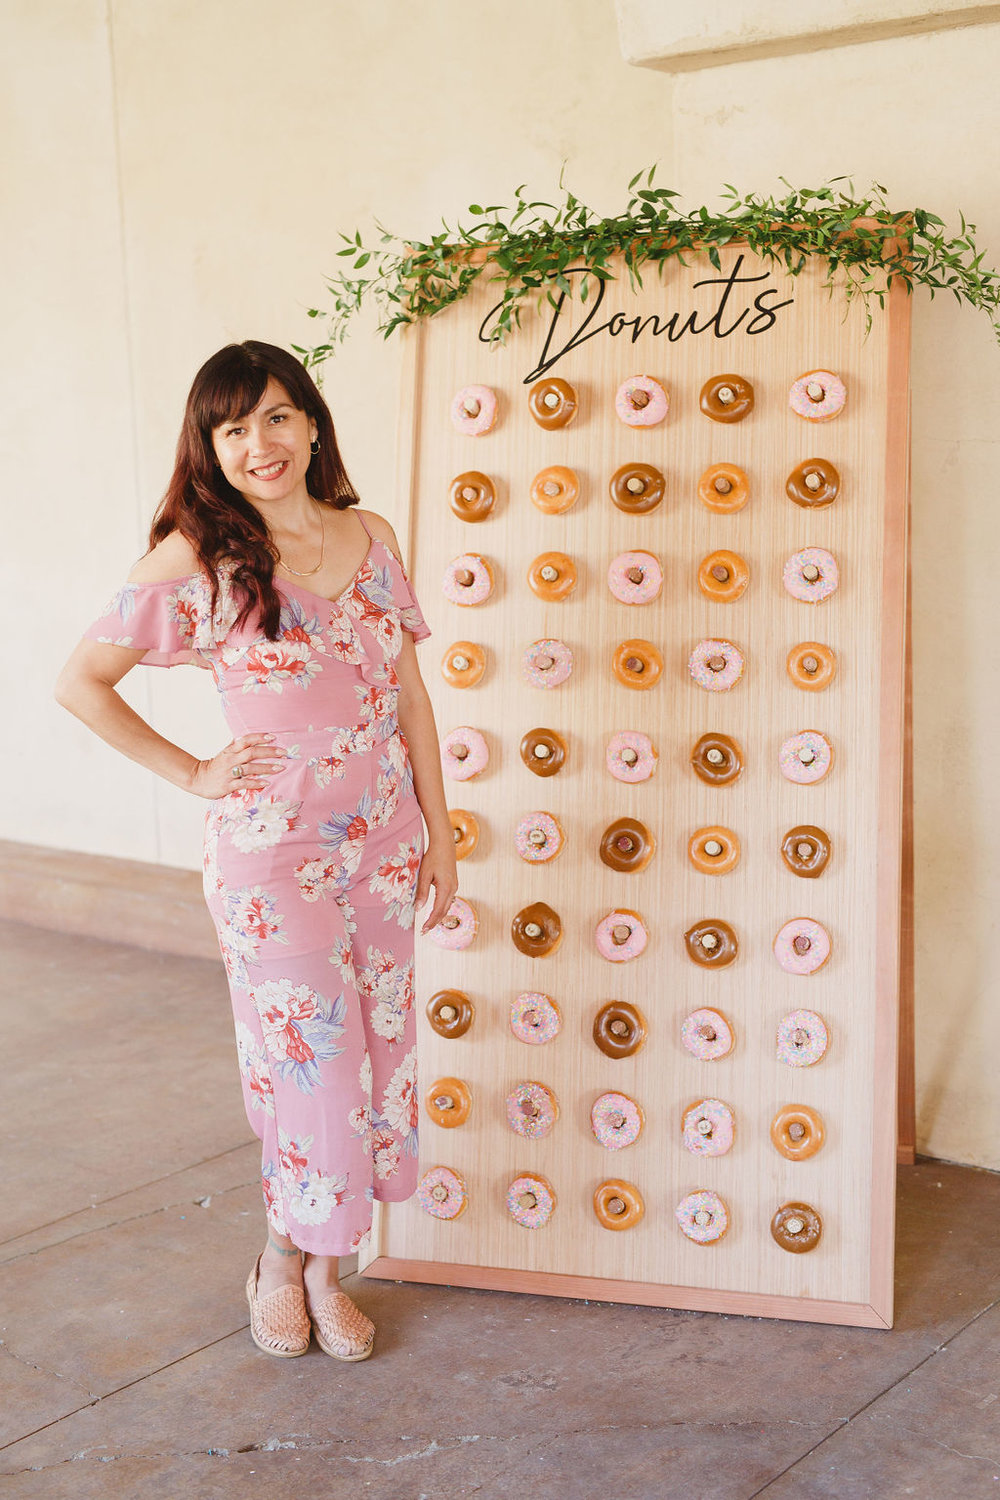 Brier Rose Design (Donut Wall)